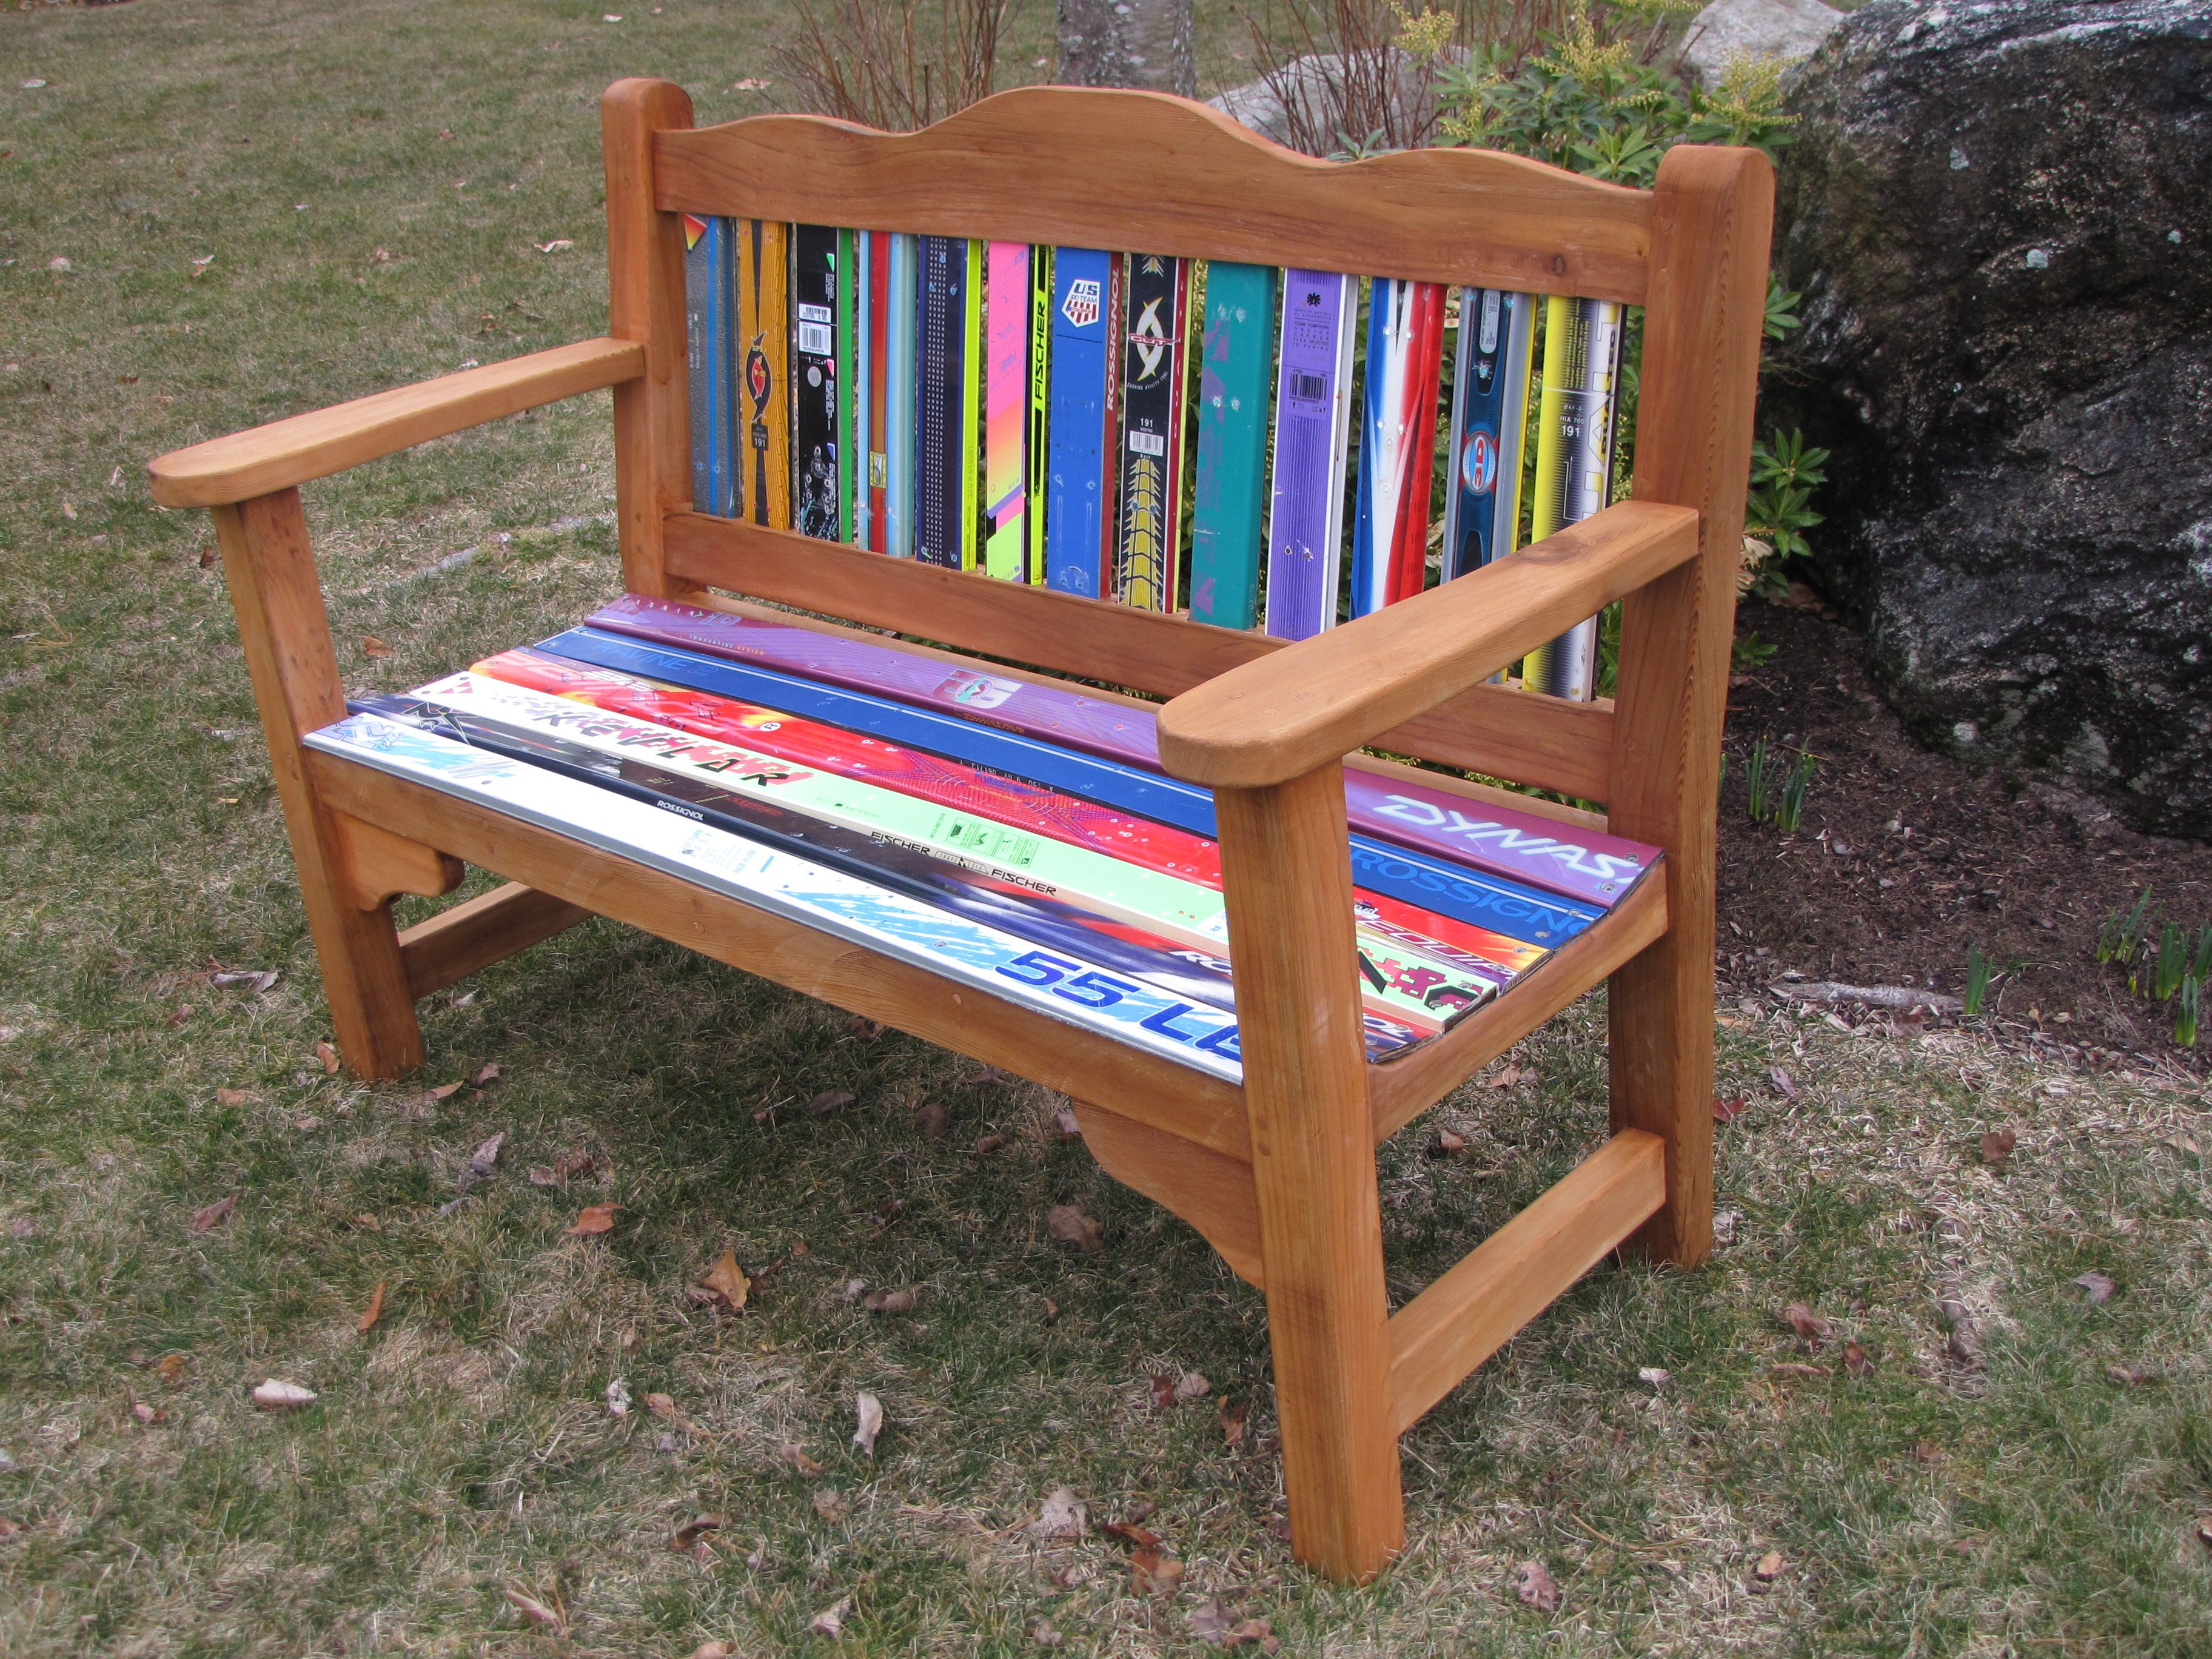 Bench Made With Recycled Skis